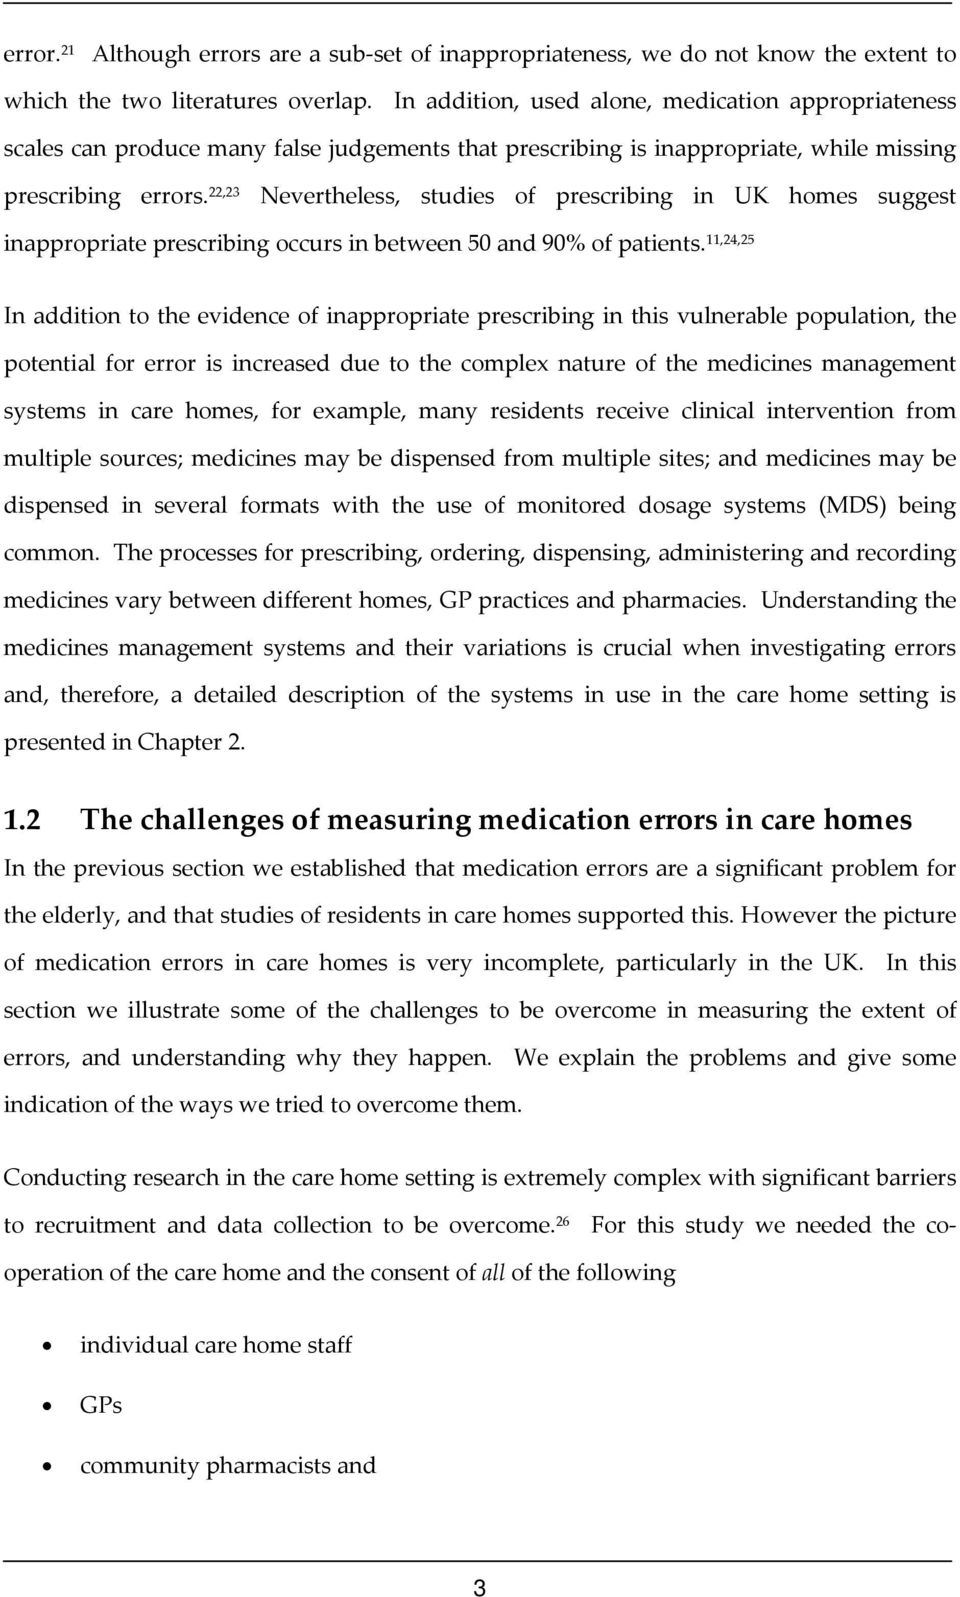 22,23 Nevertheless, studies of prescribing in UK homes suggest inappropriate prescribing occurs in between 50 and 90% of patients.